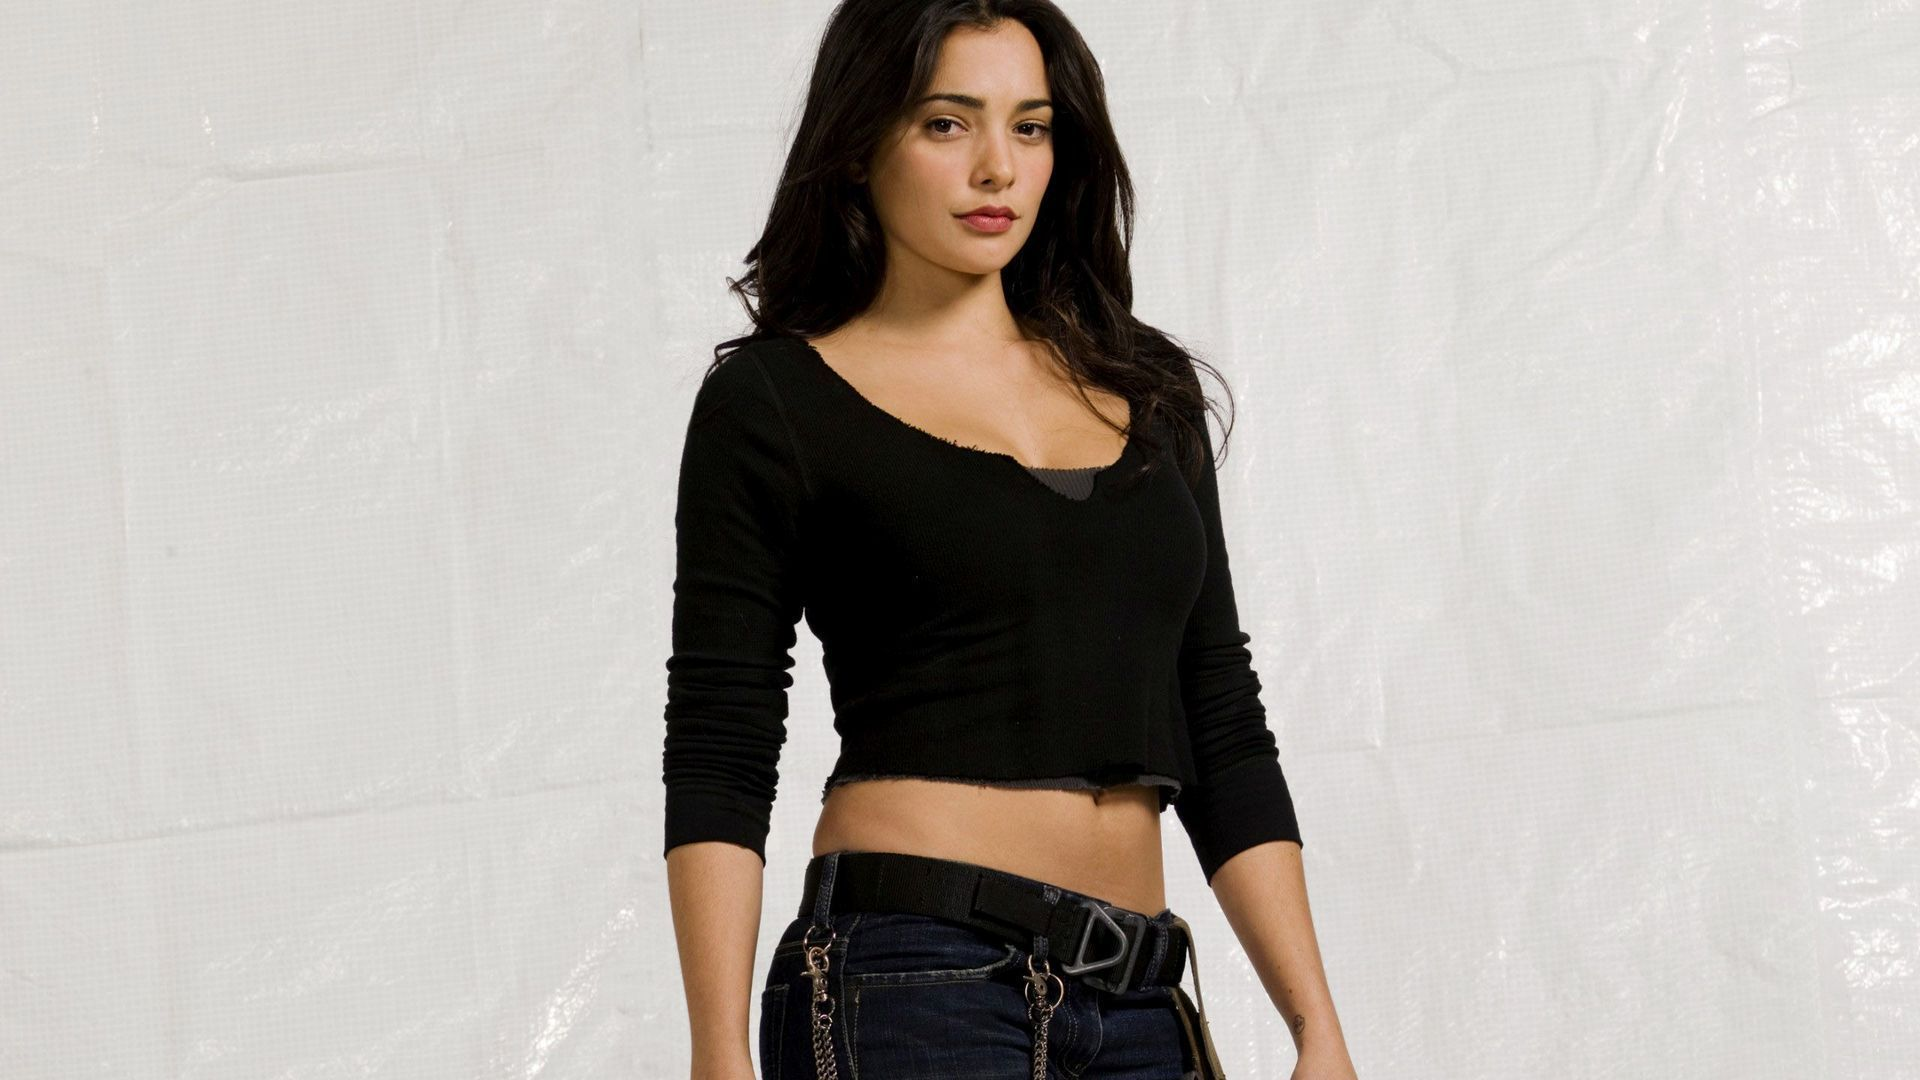 natalie martinez instagramnatalie martinez filmleri, natalie martinez личная жизнь, natalie martinez belly, natalie martinez foto, natalie martinez biography, natalie martinez vk, natalie martinez twitter, natalie martinez fan site, natalie martinez toulouse, natalie martinez wiki, natalie martinez actress, natalie martinez imdb, natalie martinez instagram, natalie martinez facebook, natalie martinez film, natalie martinez kimdir